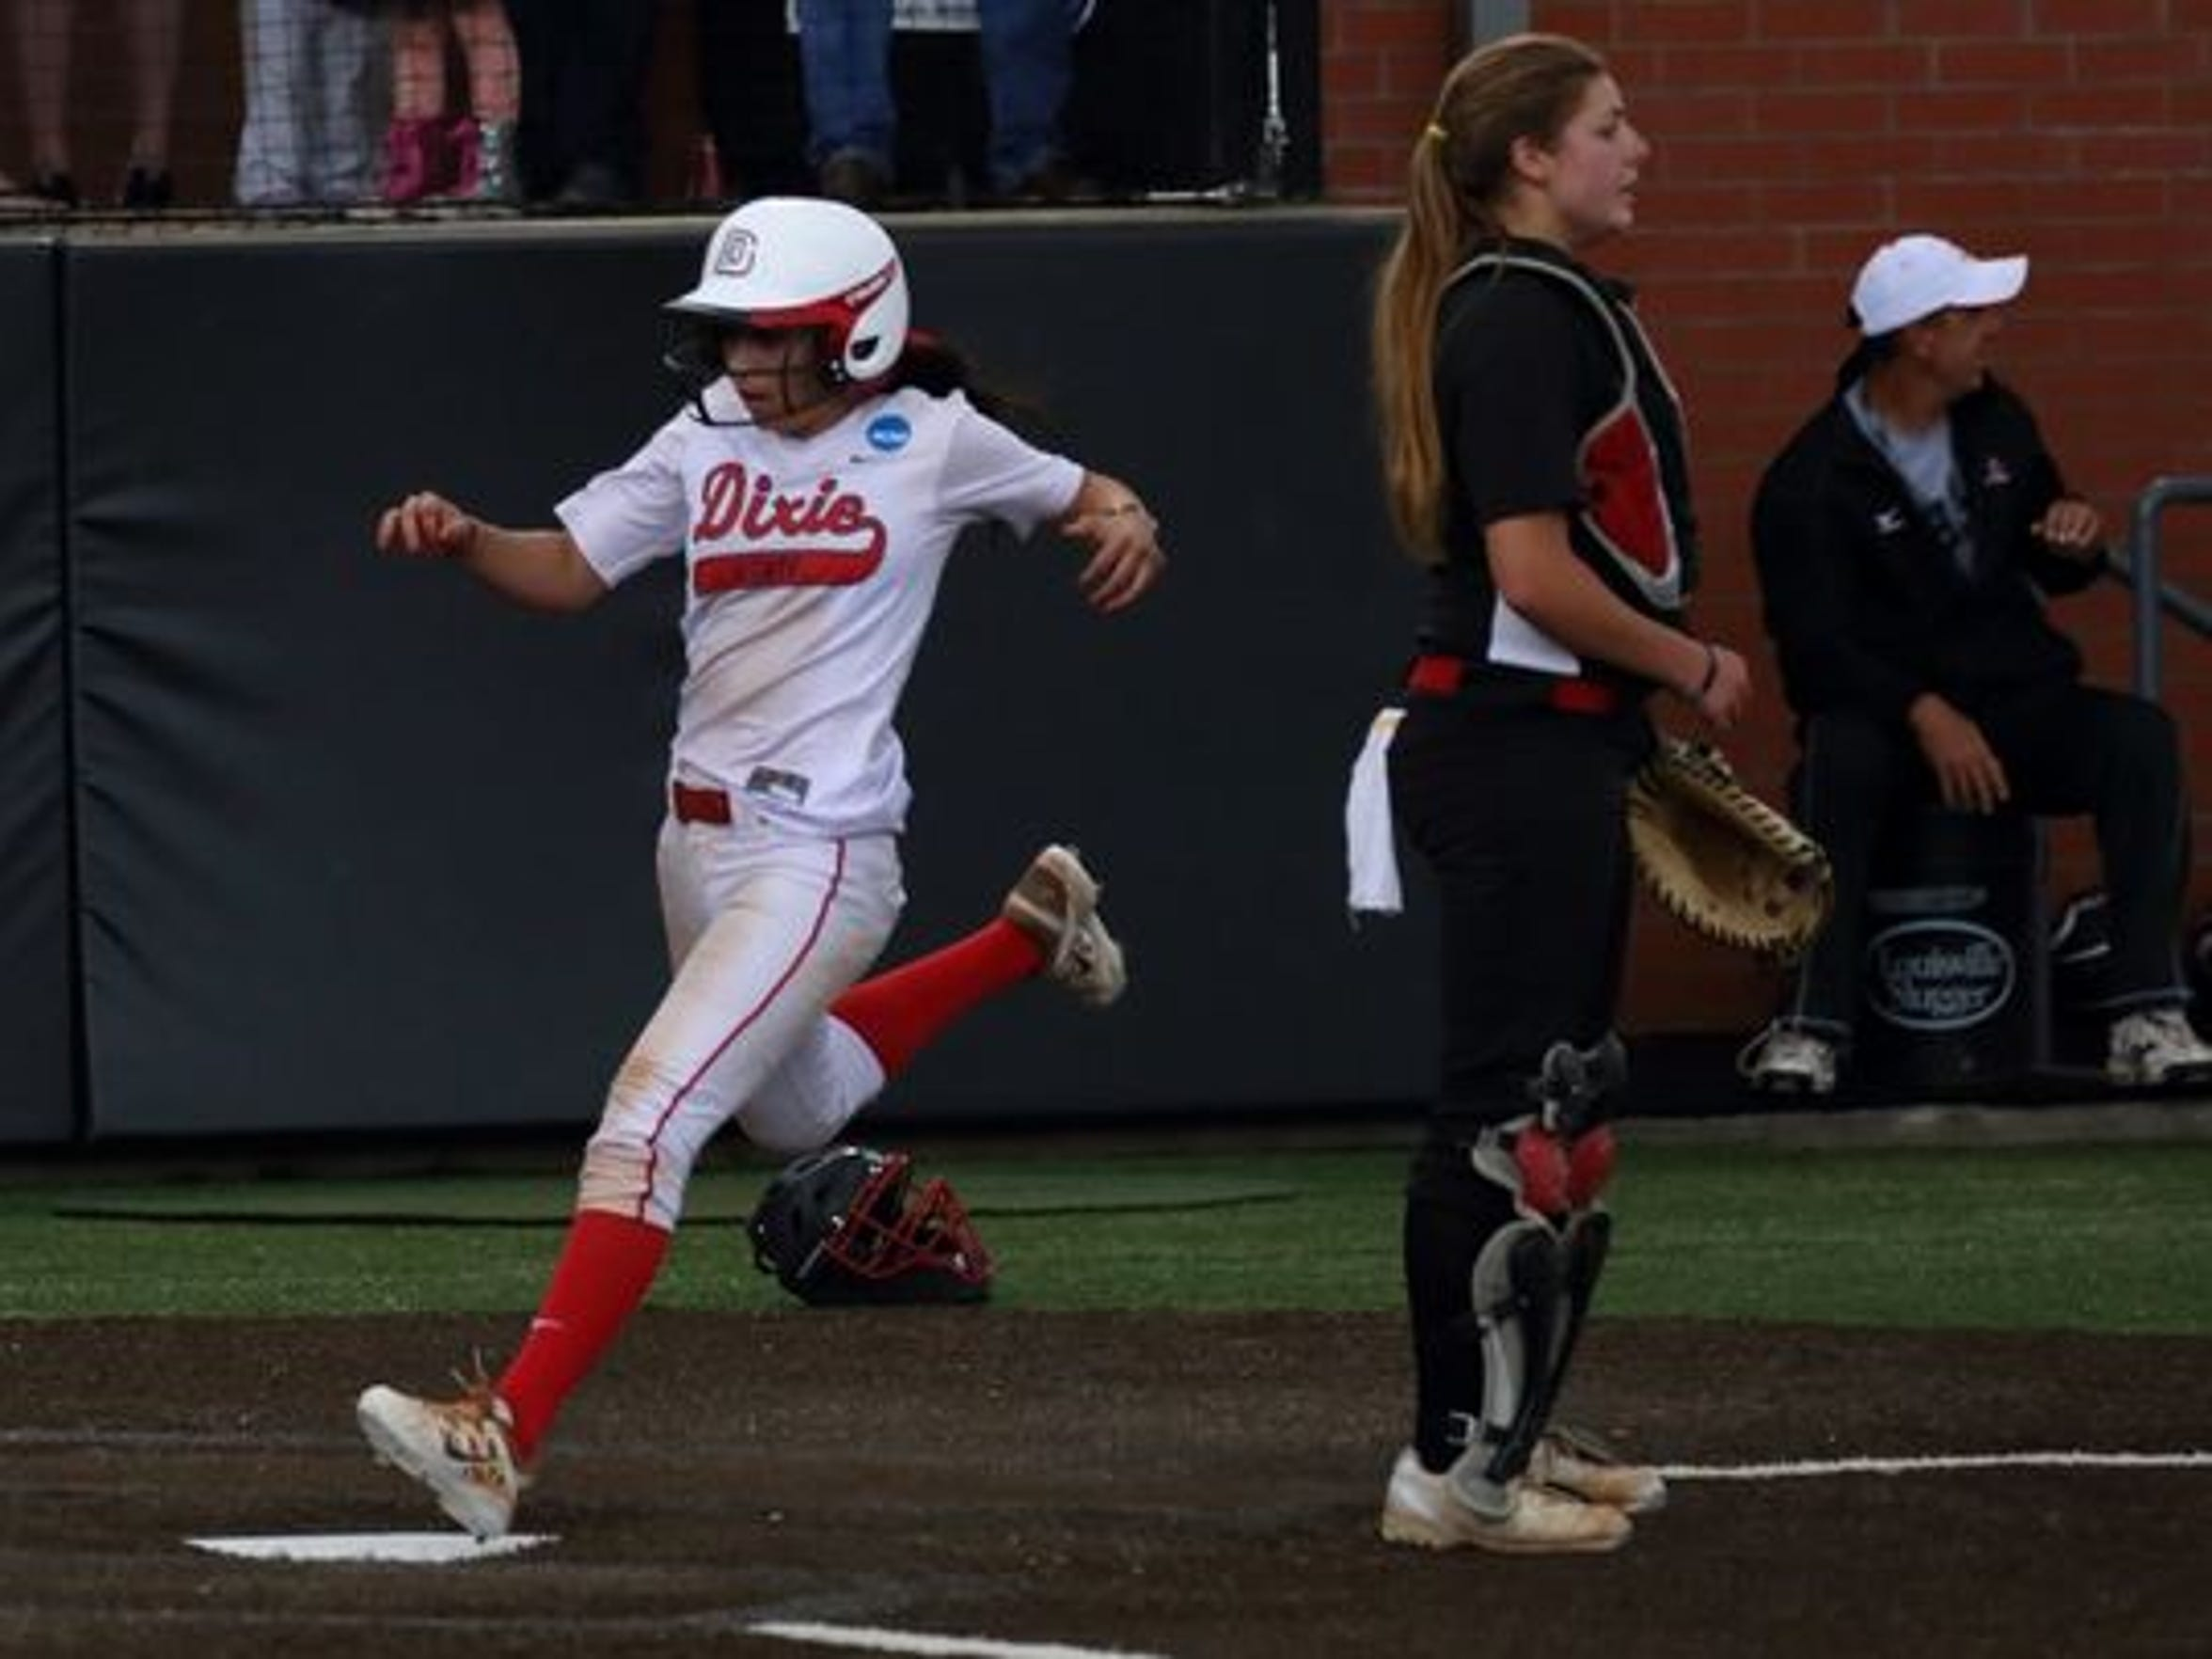 Dixie State's Janessa Bassett scores a run against California Pennsylvania during the semifinals of the NCAA Division II Softball Championship in Edmond, Oklahoma.